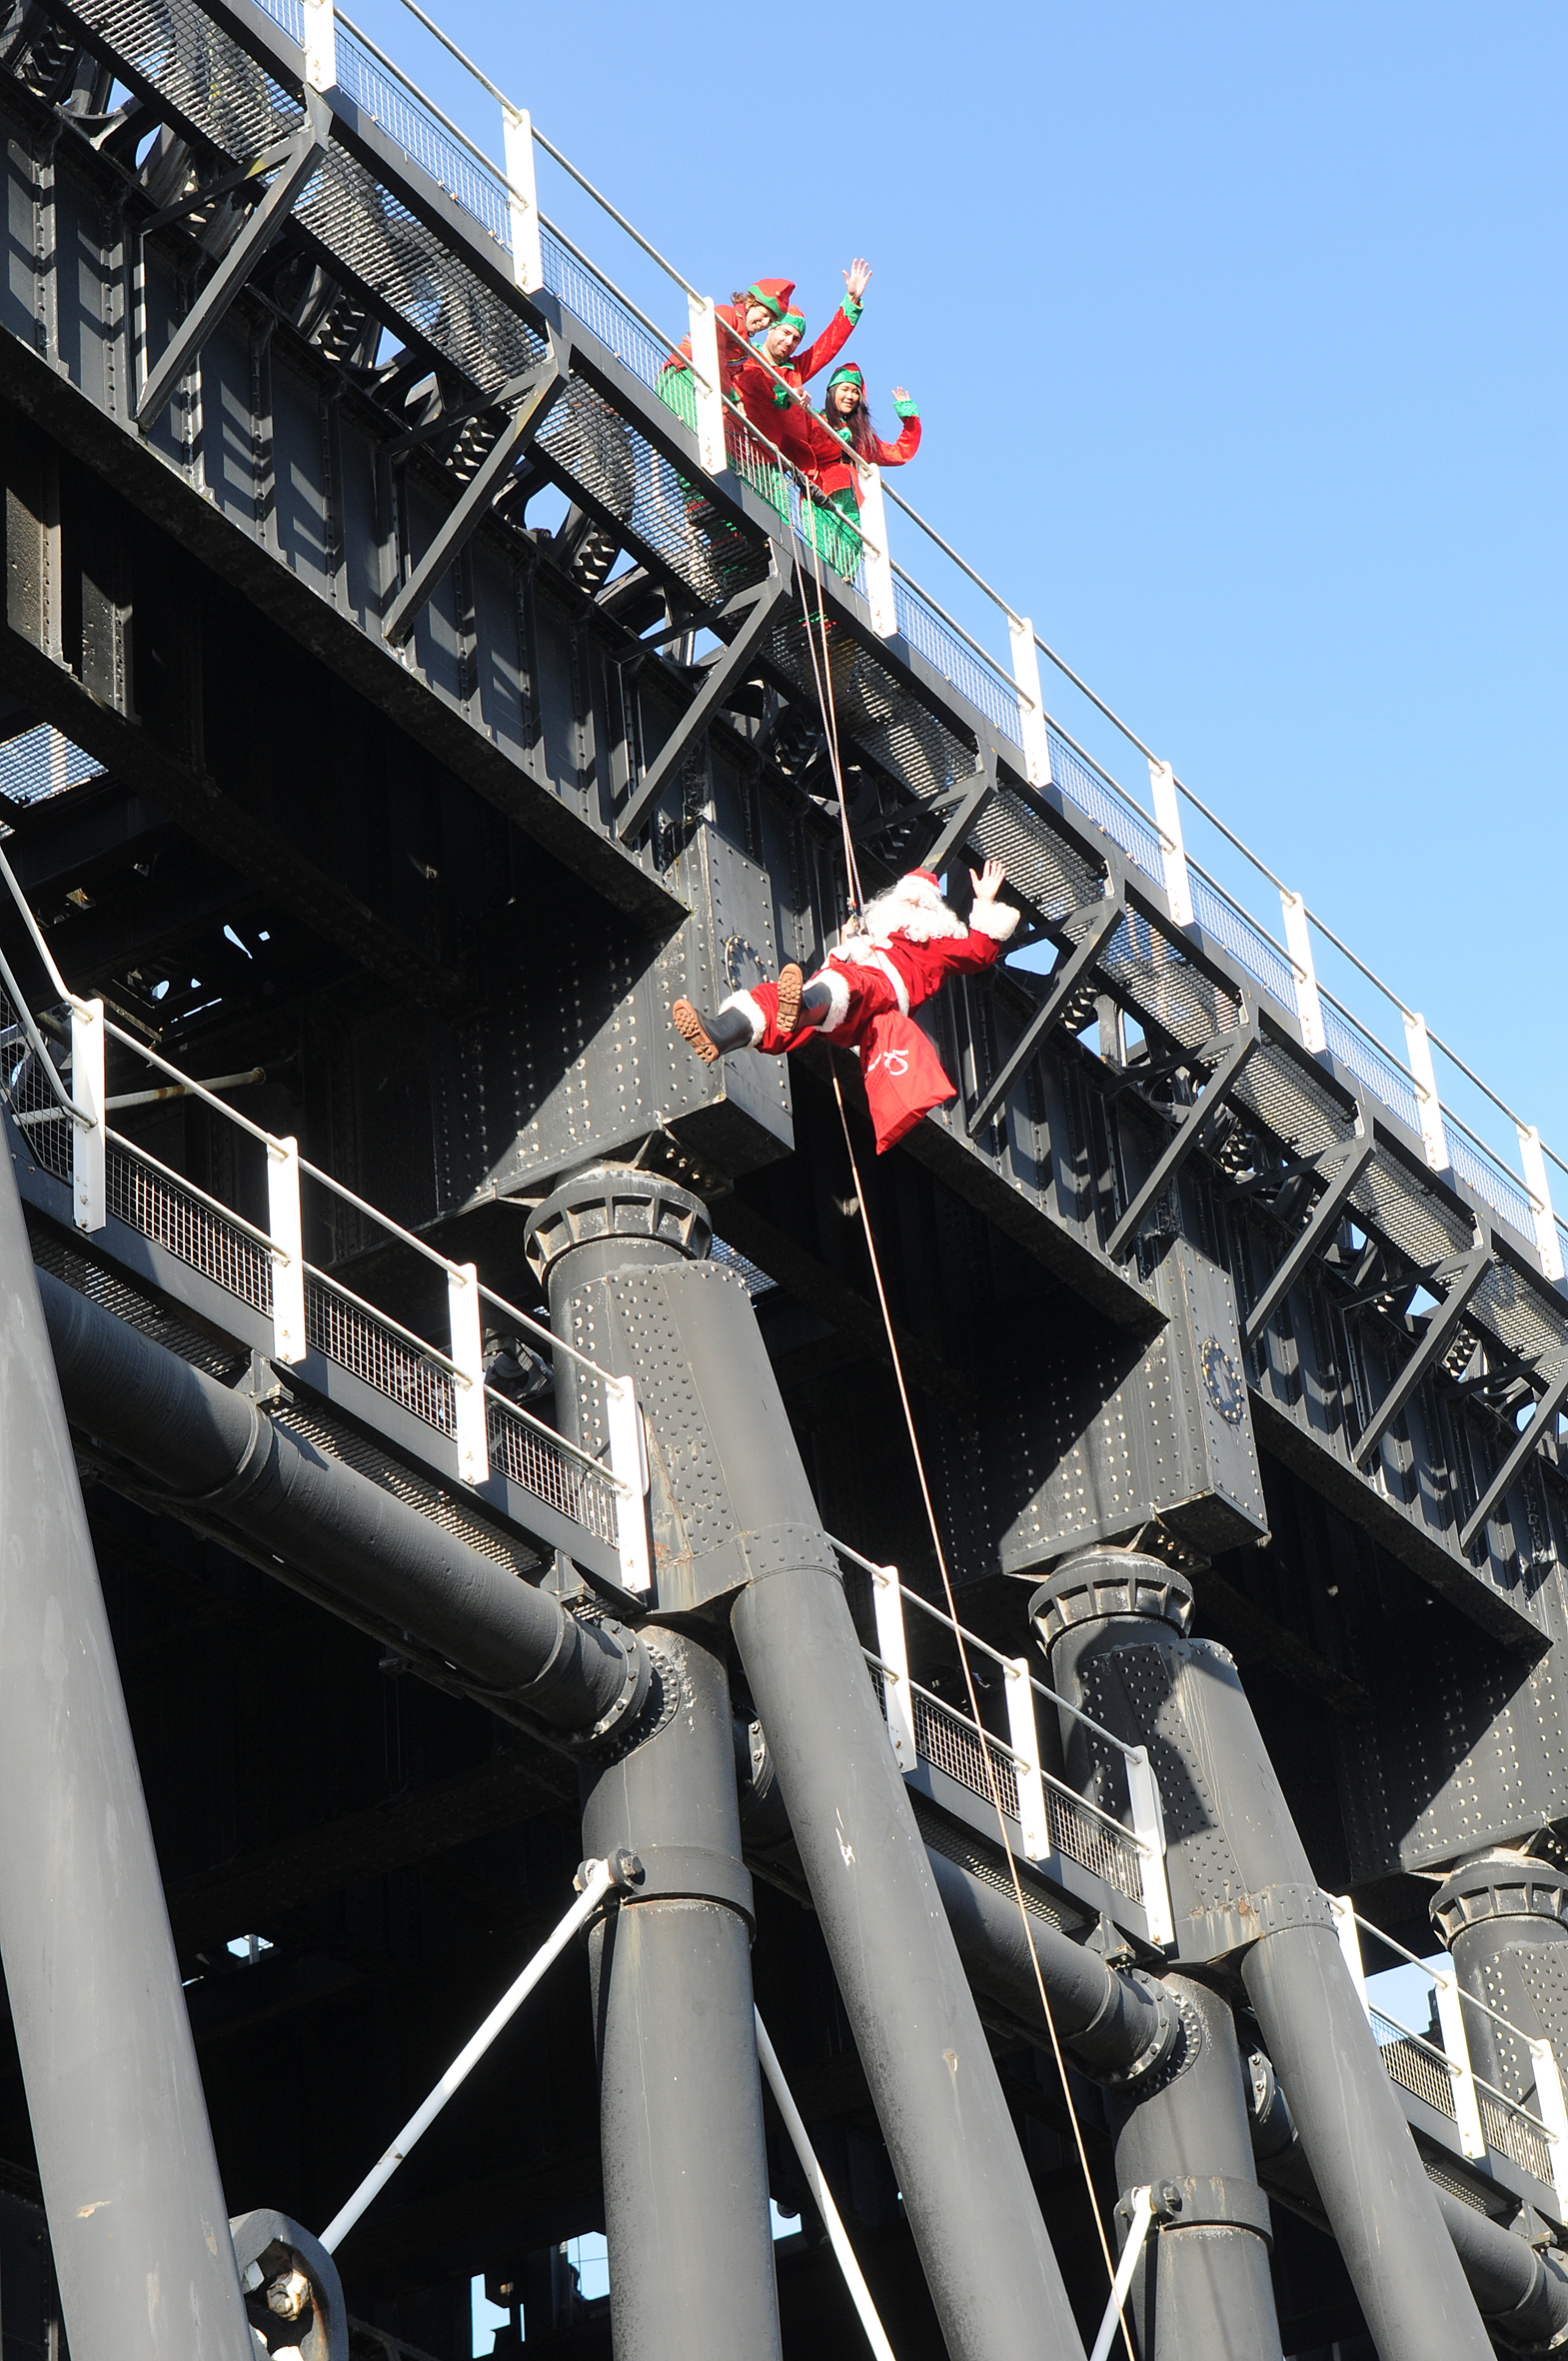 SANTA CLAUS PRACTICES HIS CLIMBING SKILLS  BY ABSEILING DOWN CHESHIRE'S GIANT CATHEDRAL OF THE CANAL